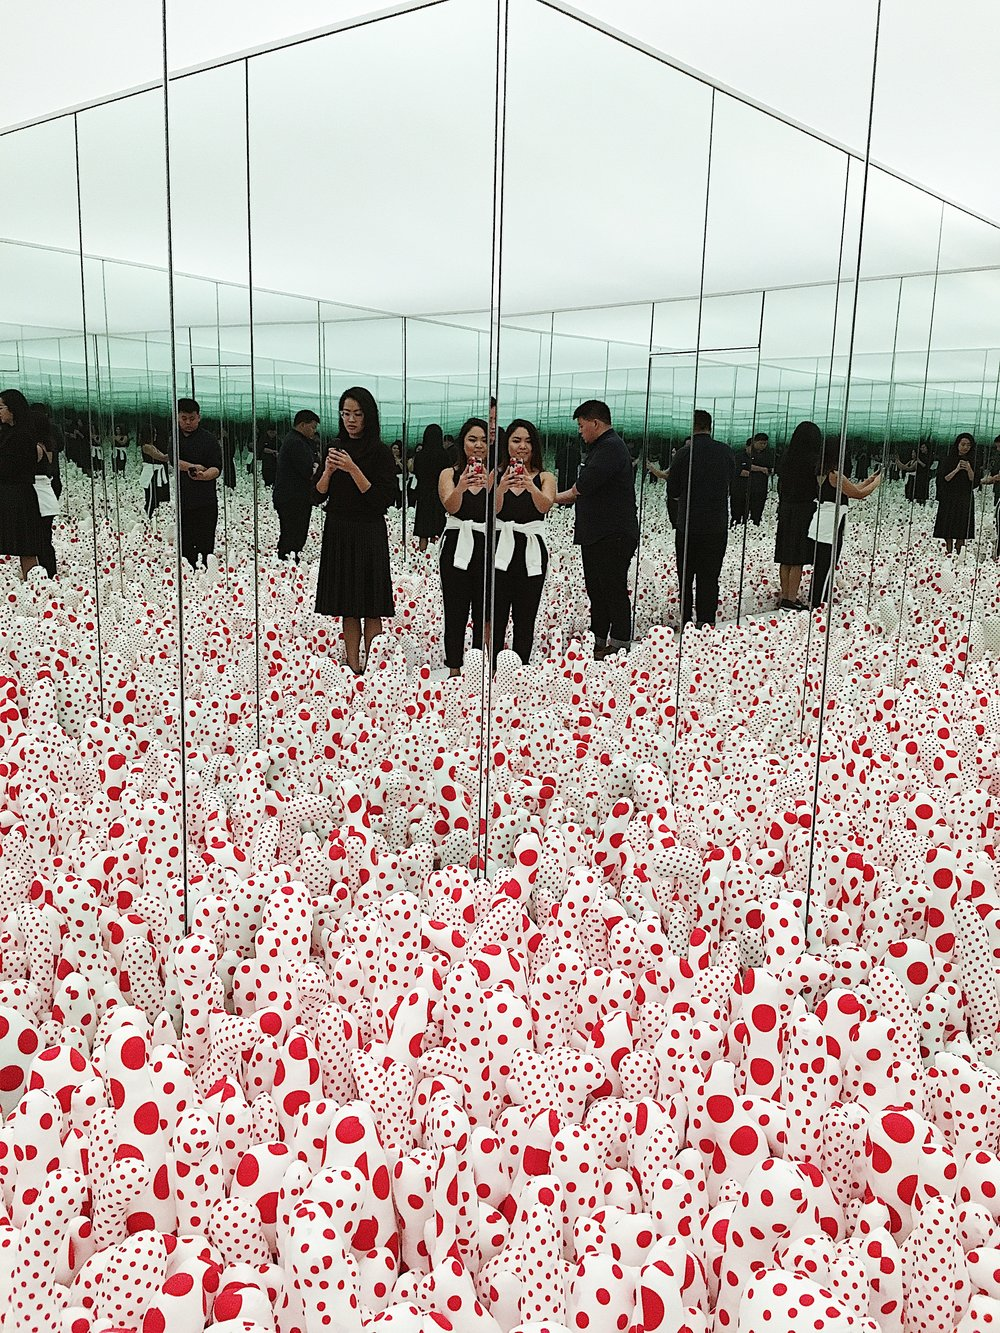 Infinity Mirror Room--Phalli's Field (1965)